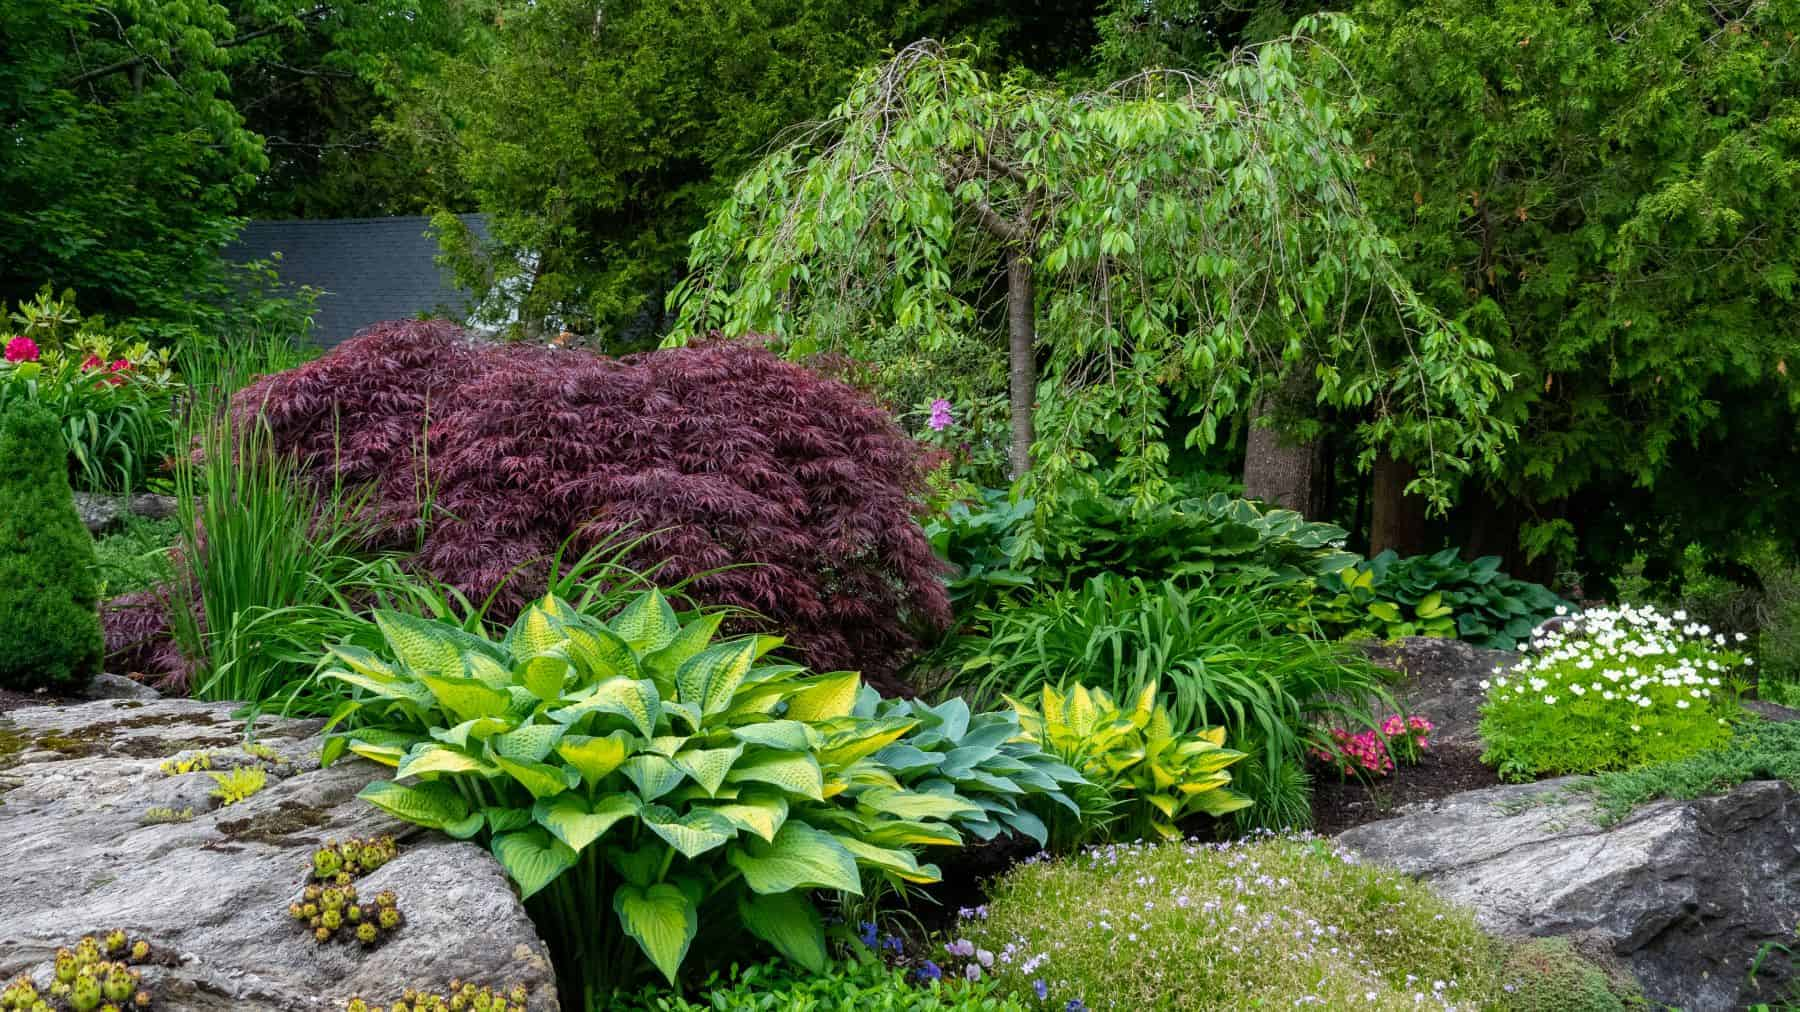 Rock garden with hostas, Japanese Maples and other plants